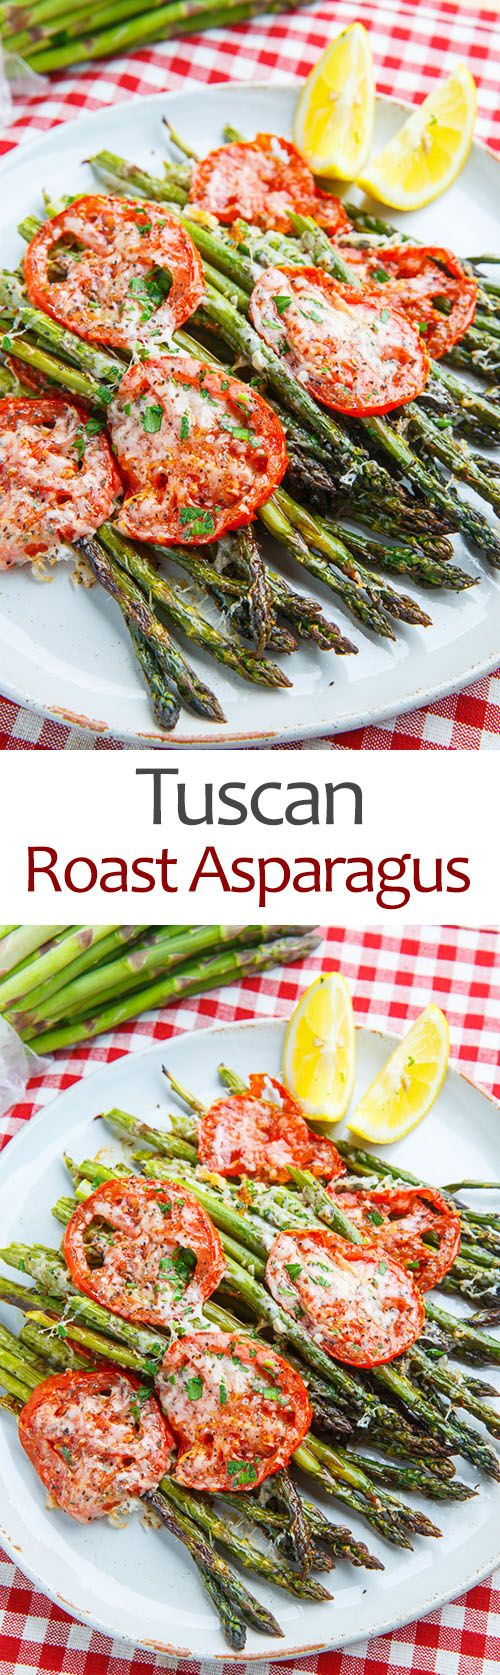 Tuscan Roast Asparagus www.MarysLocalMarket.com Sustainable. Natural. Community. #maryslocalmarket